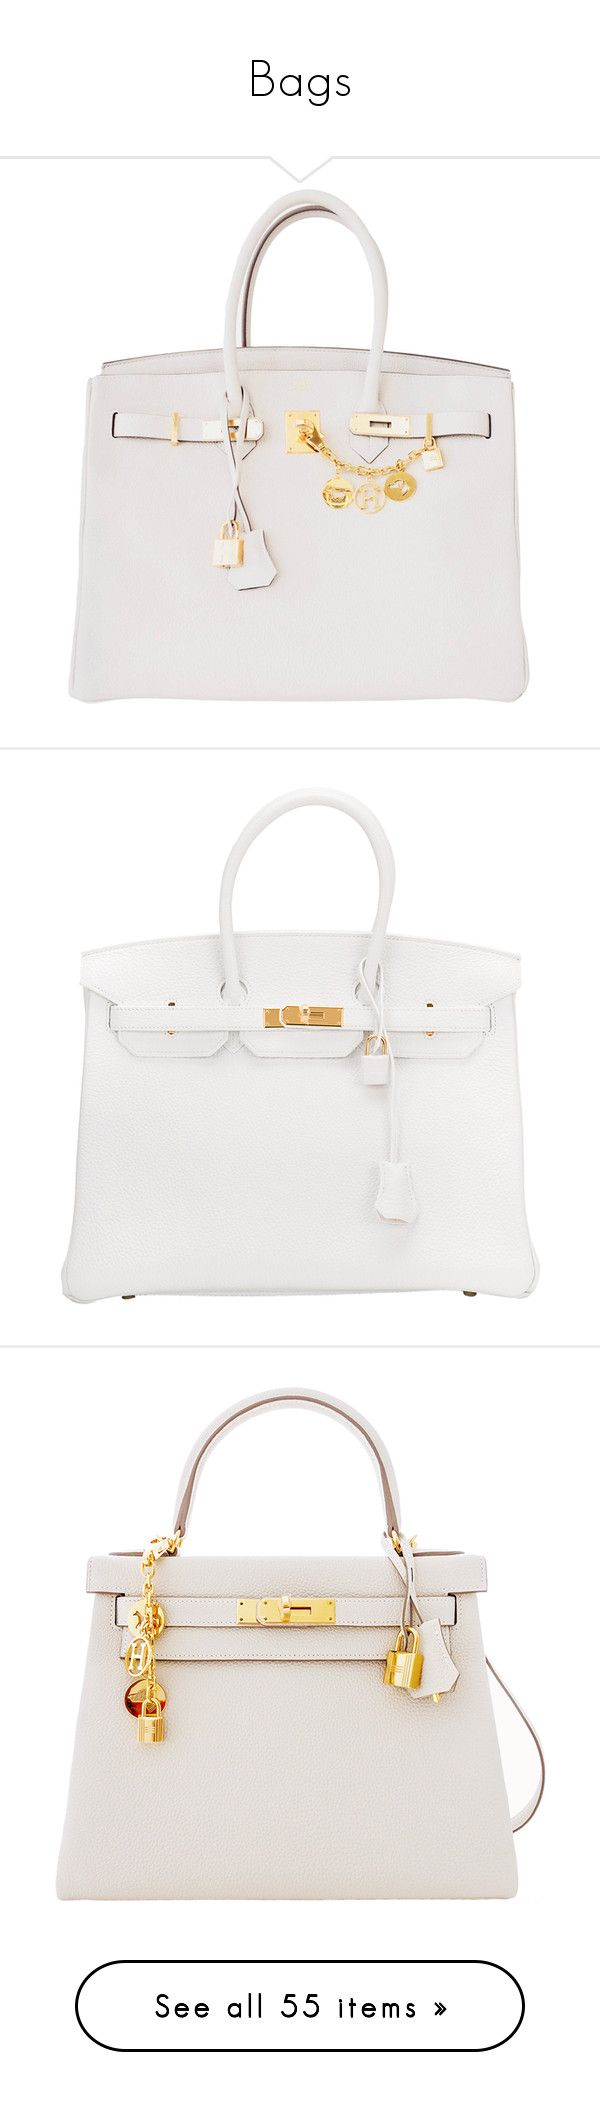 """""""Bags"""" by rubyheartsd on Polyvore featuring bags, handbags, tote bags, craie, hermes handbags, preowned handbags, gold tote handbags, multi colored purses, hermes purse and purses"""